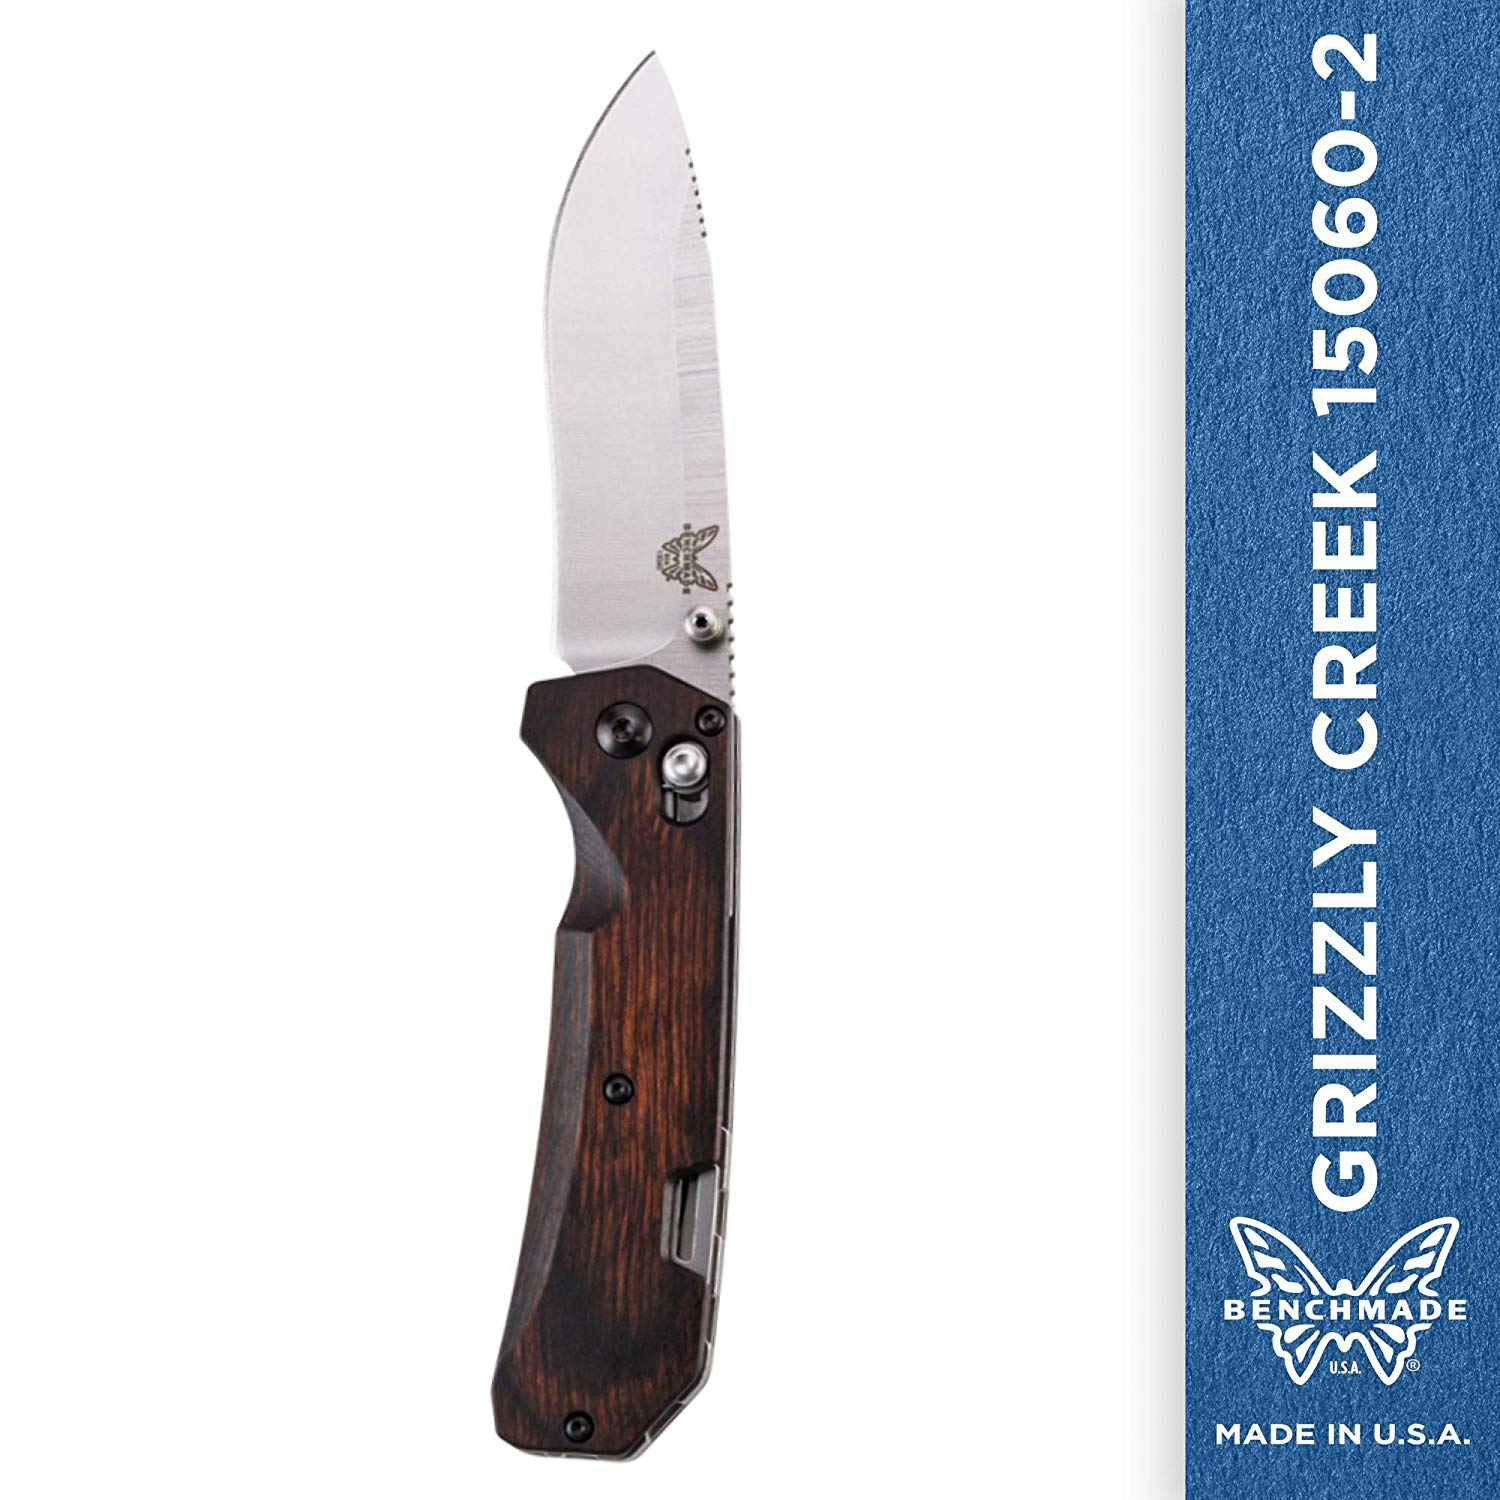 Benchmade - Grizzly Creek 15060-2 Knife Wood Handle